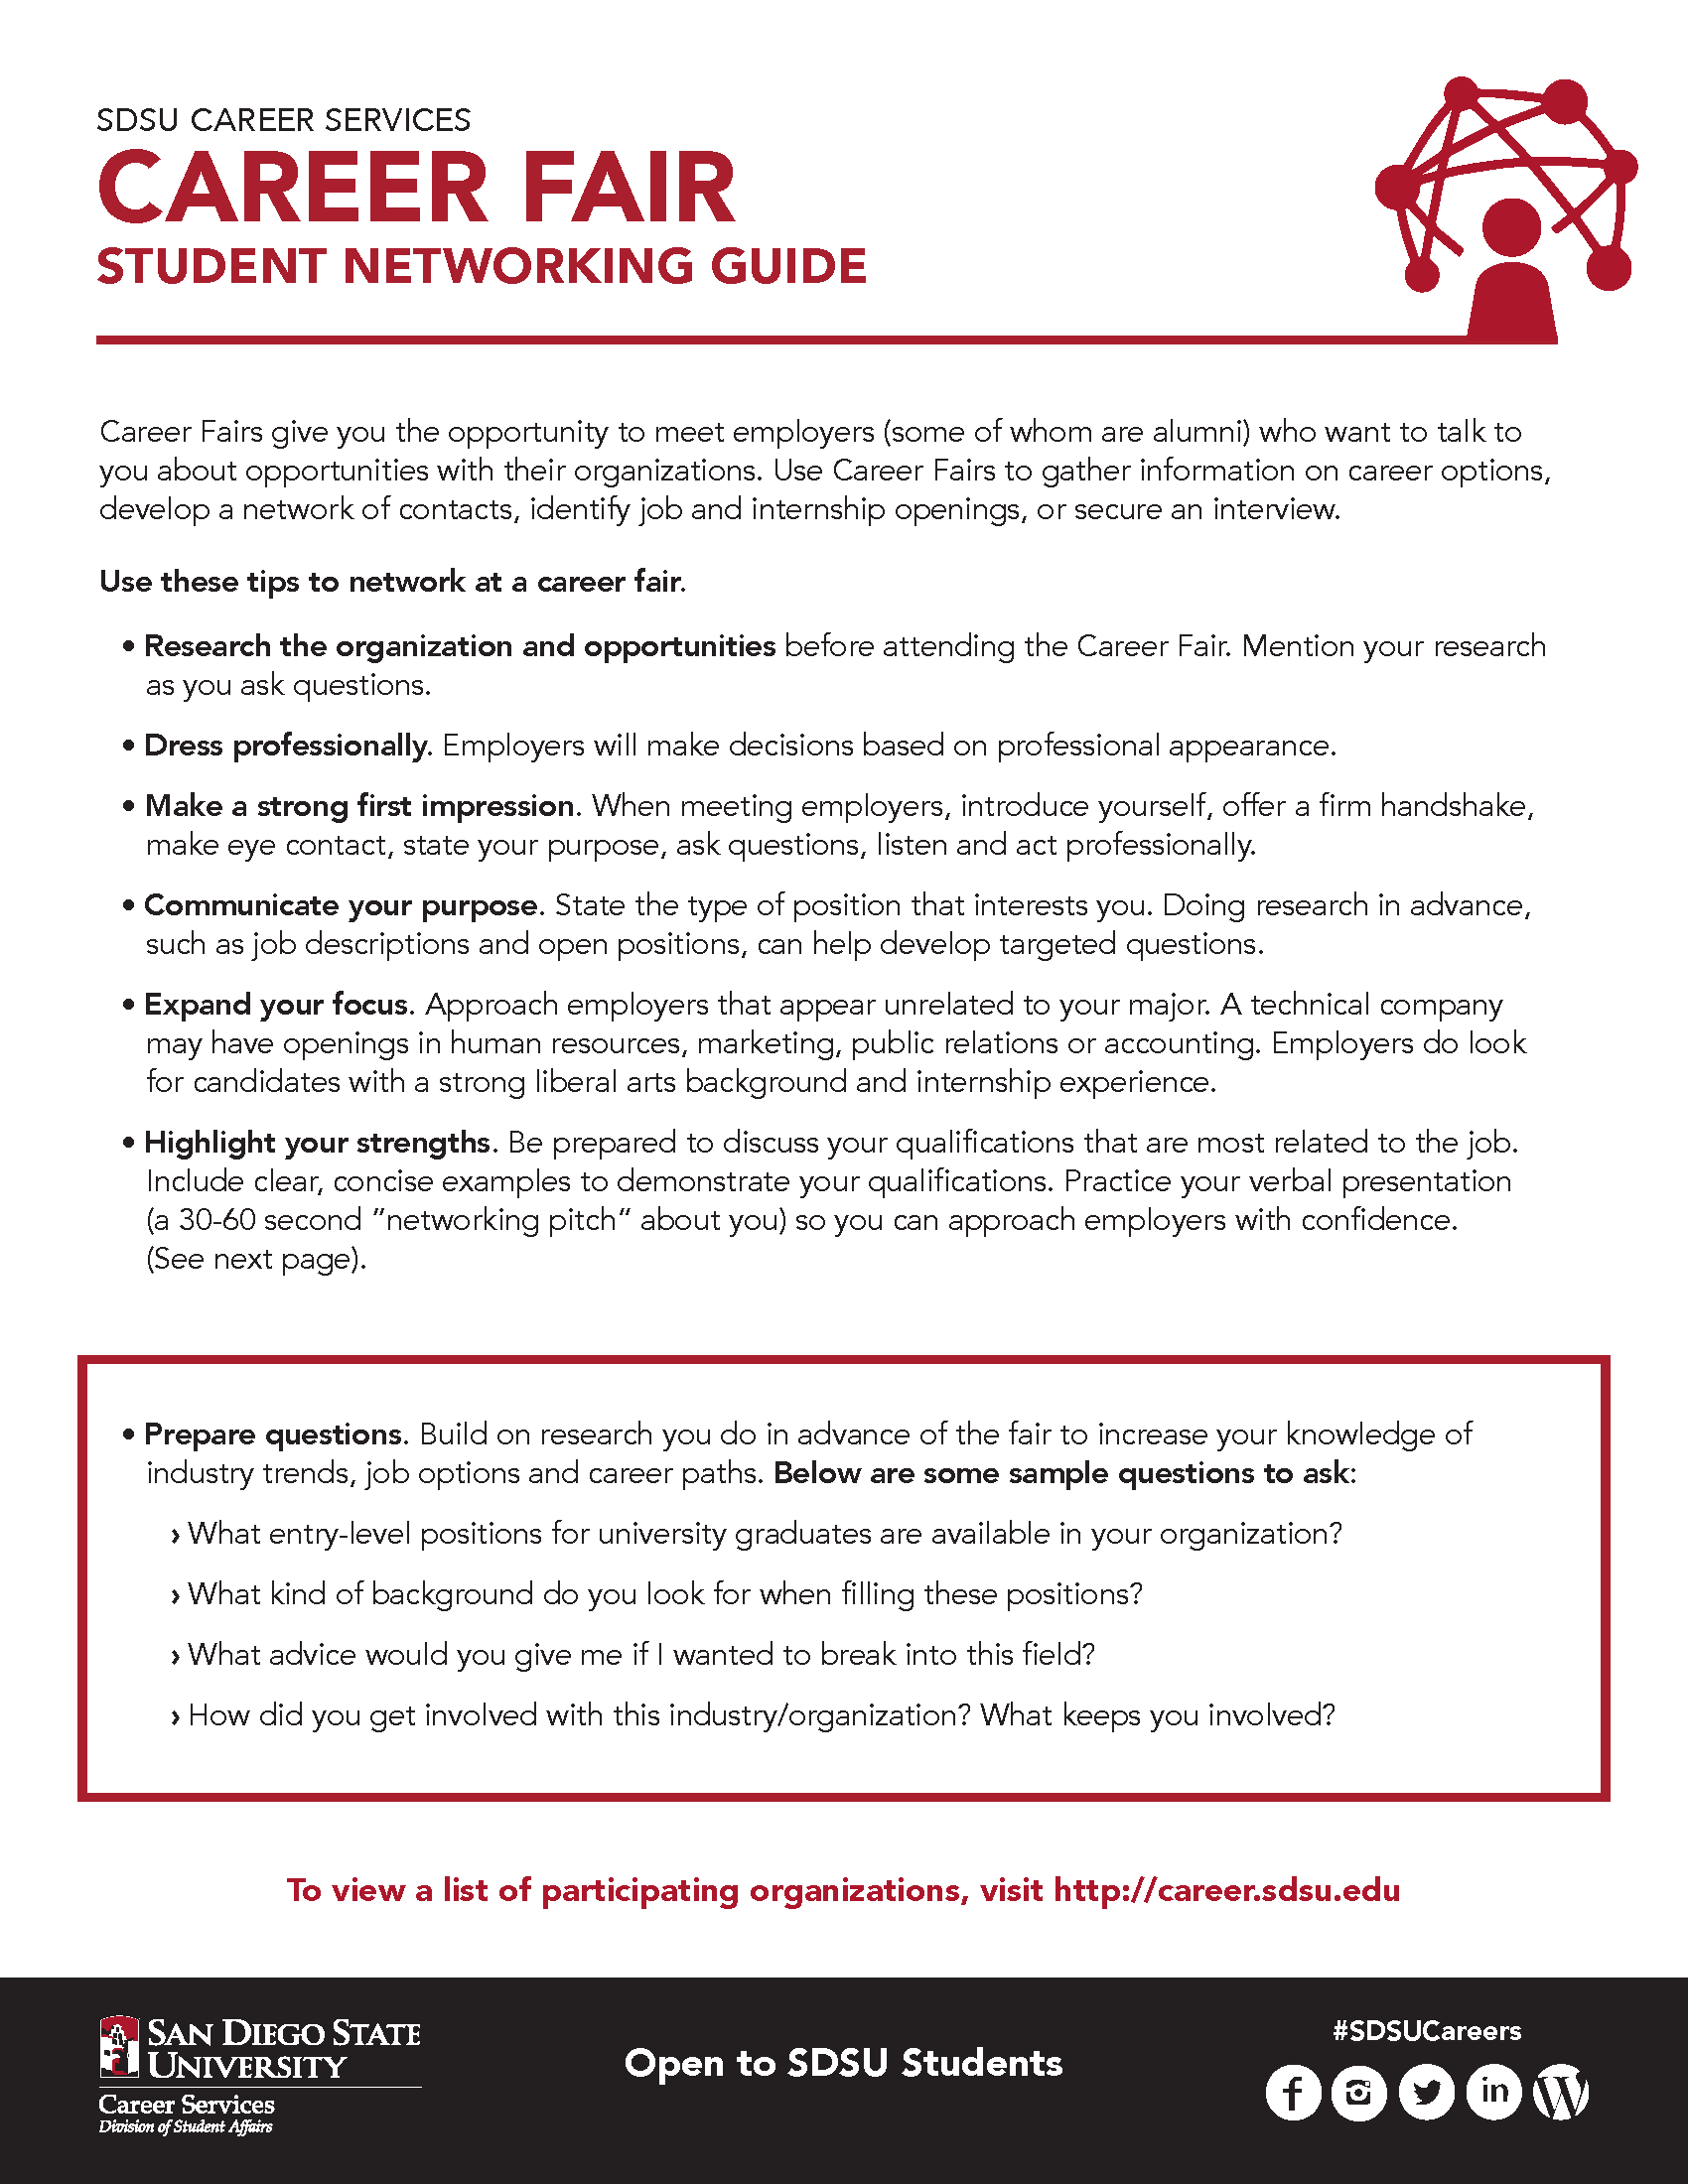 Career Fair Networking Guide | SDSU